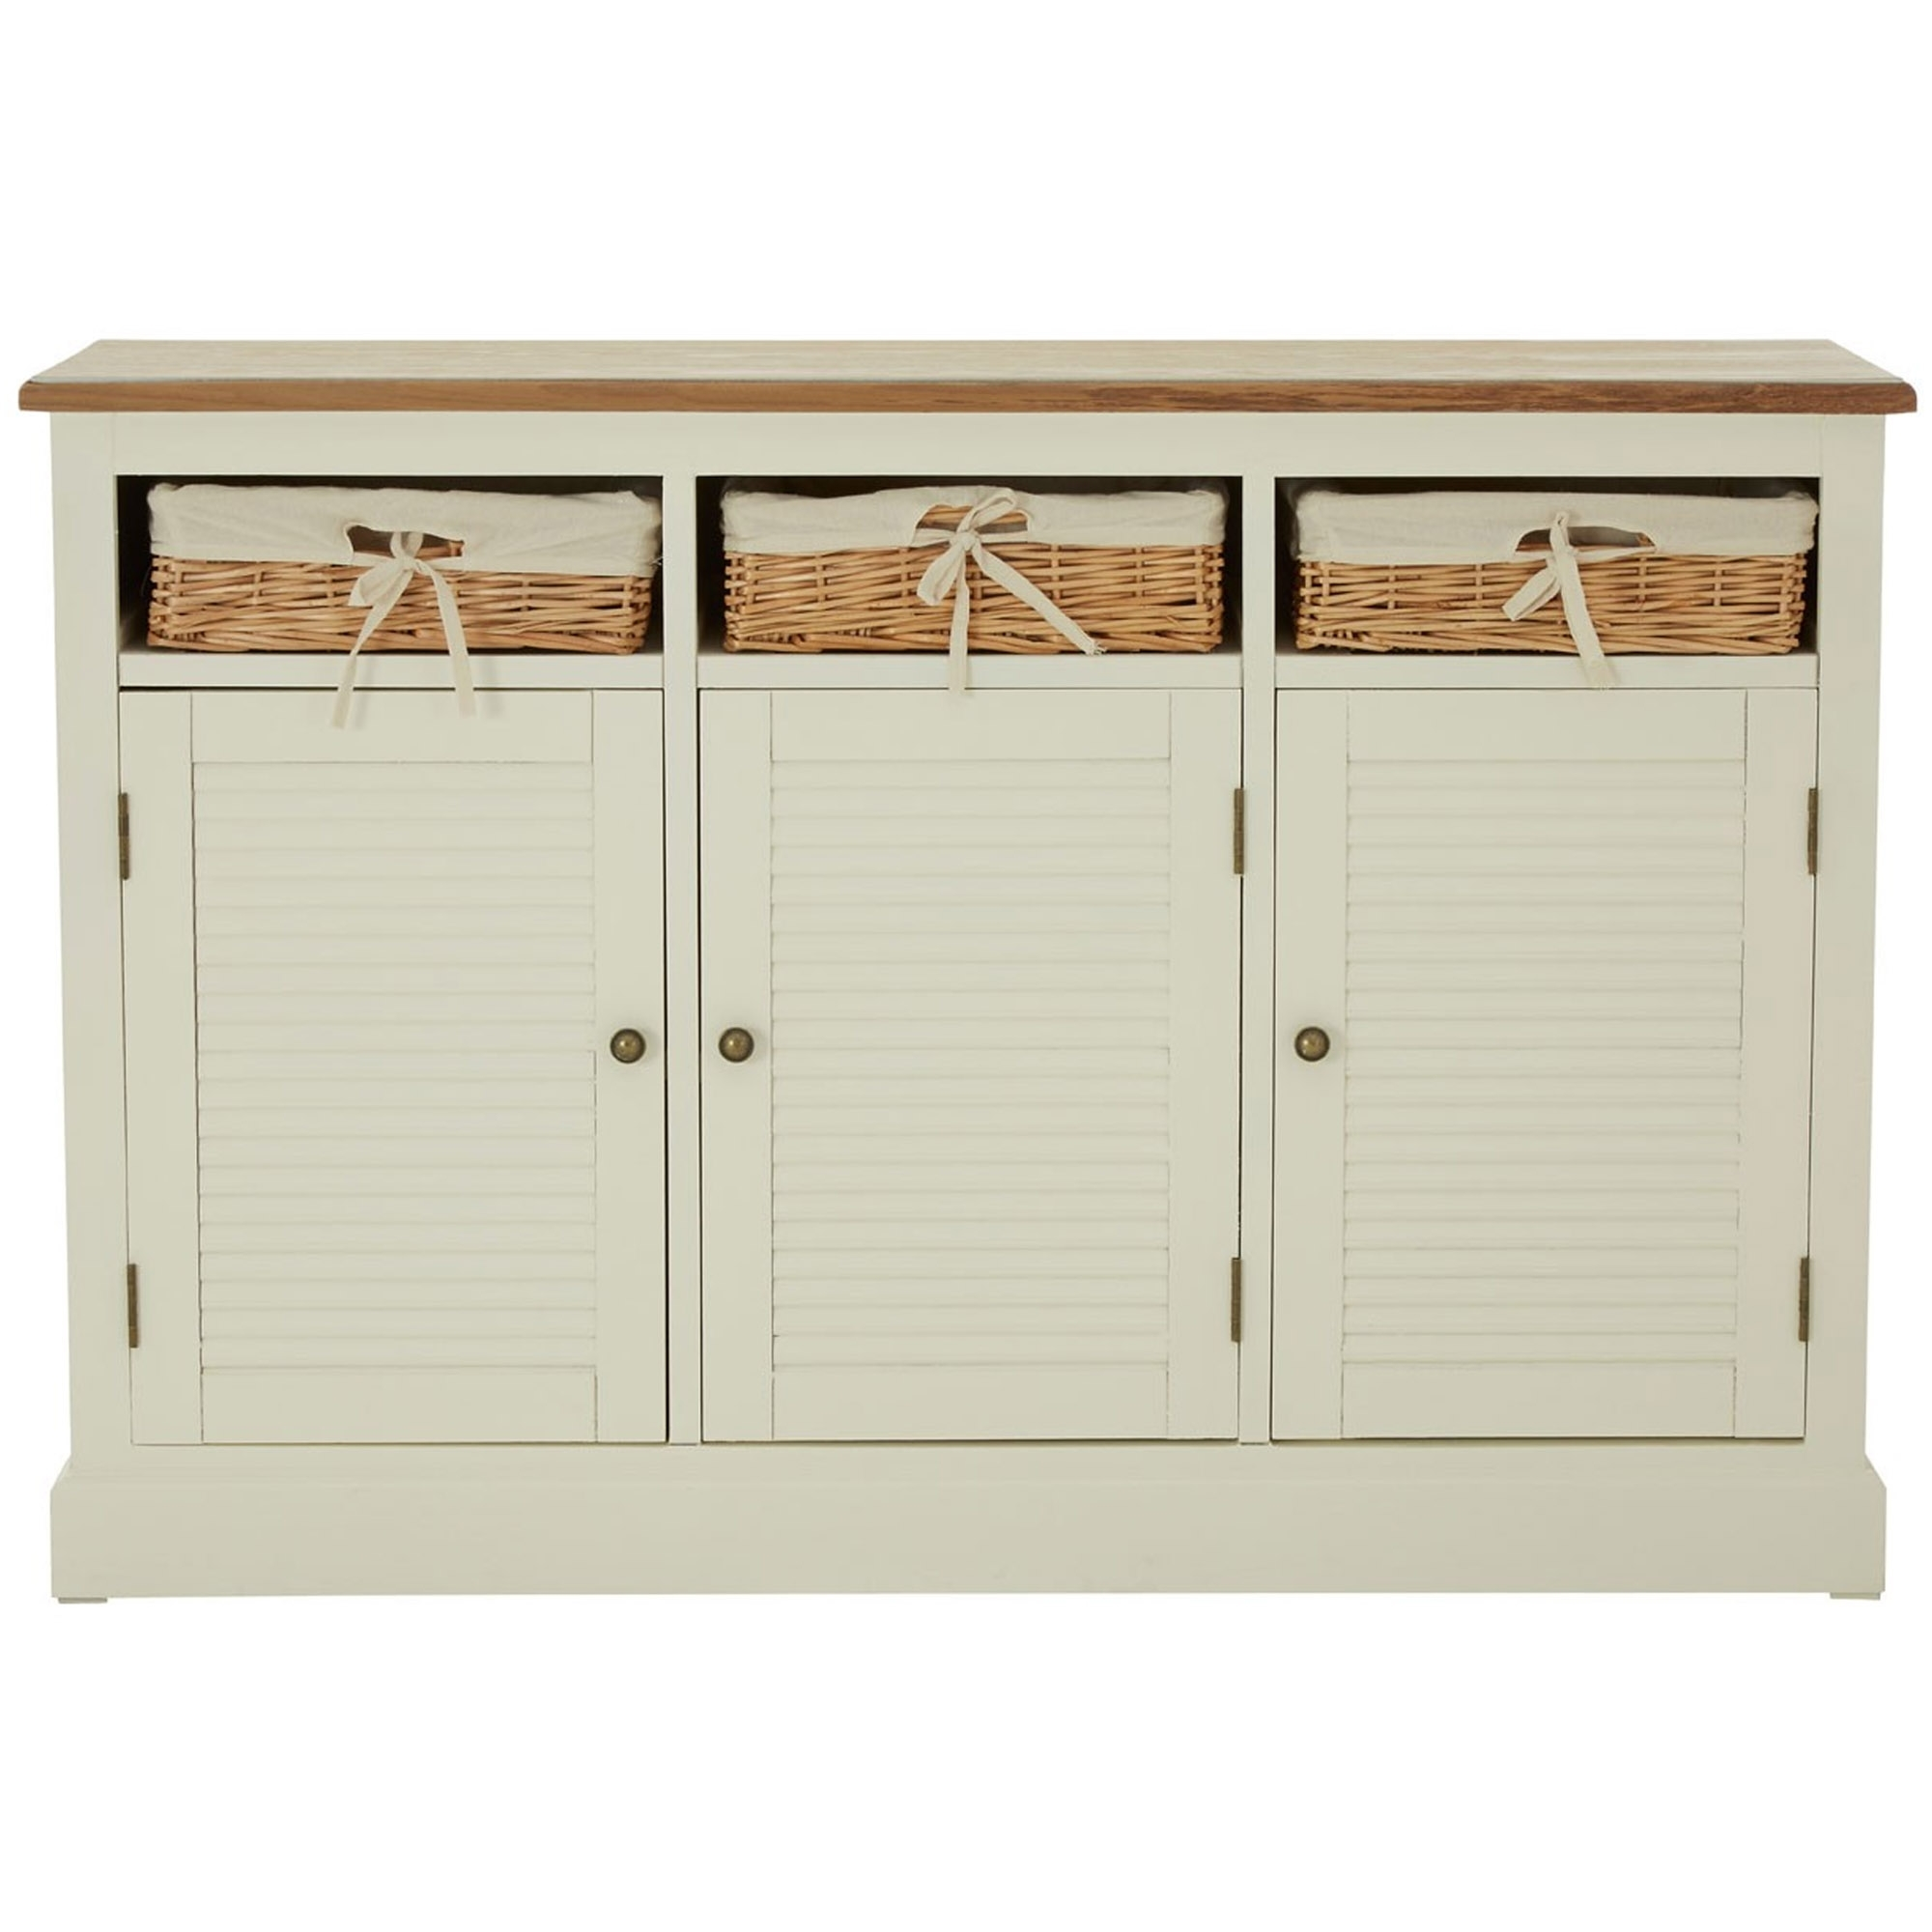 Dorset Cream Sideboard Antique French Style Furniture - Garden Furniture Clearance Dorset